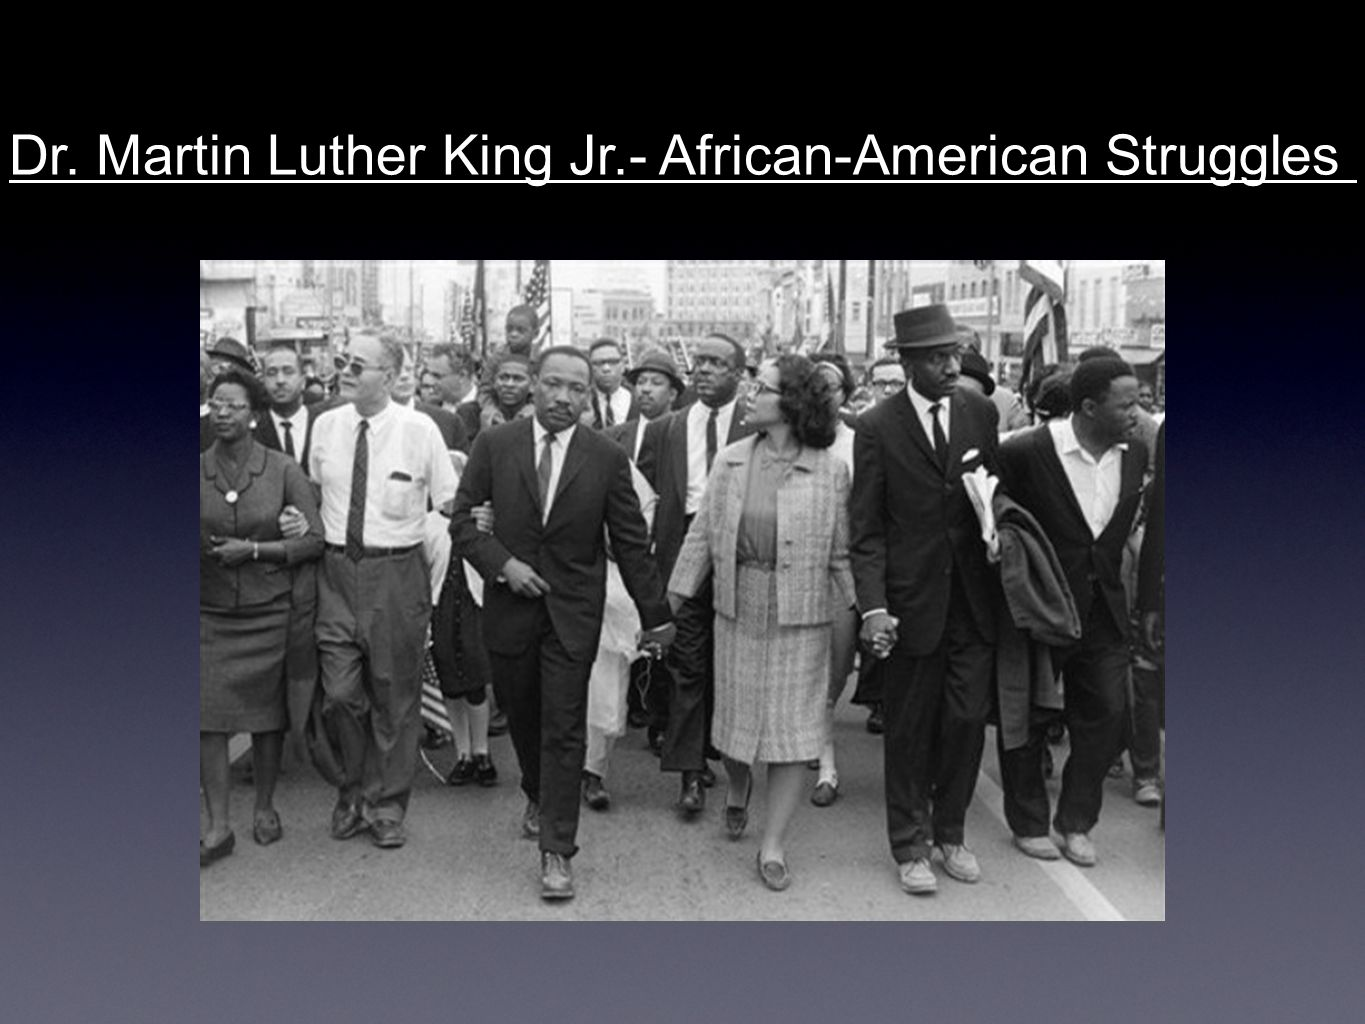 Dr. Martin Luther King Jr.- African-American Struggles